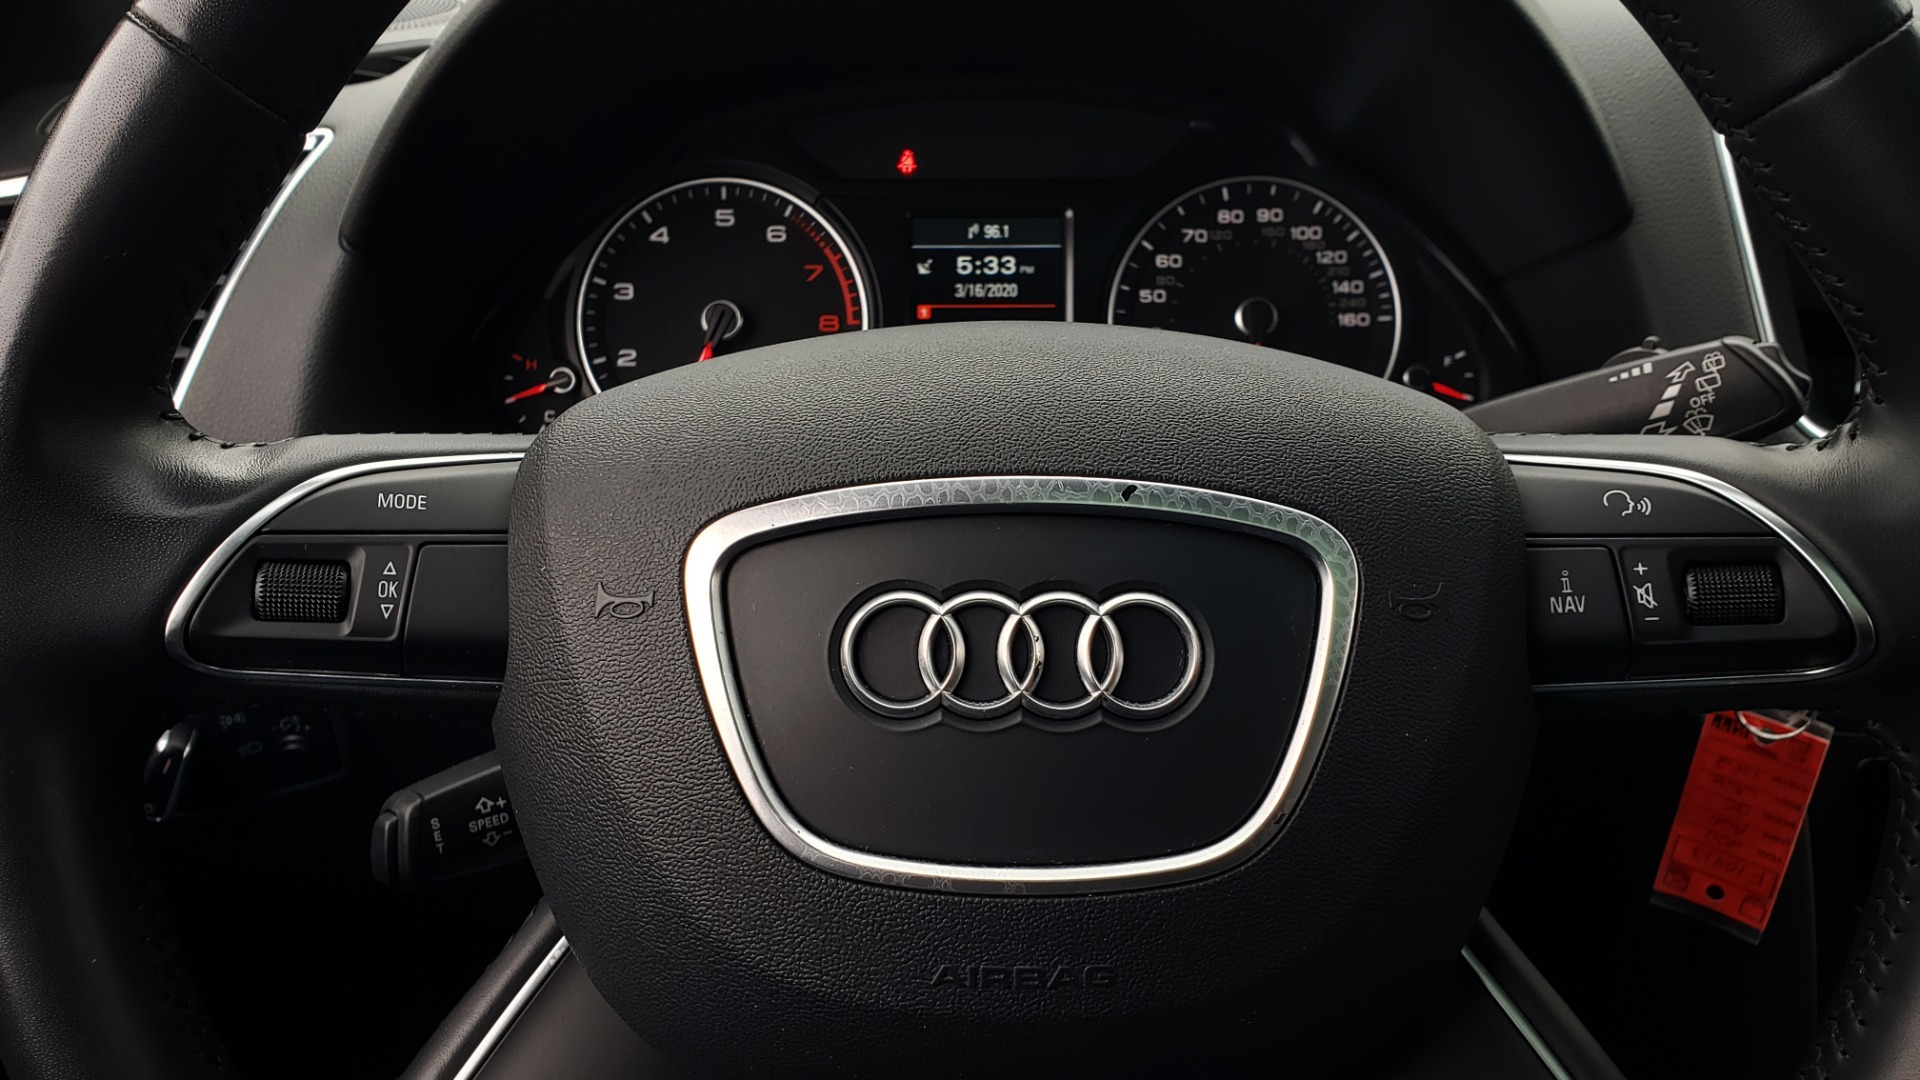 Used 2017 Audi Q5 PREMIUM PLUS / TECH / NAV / PANO-ROOF / B&O SND / REARVIEW for sale Sold at Formula Imports in Charlotte NC 28227 44